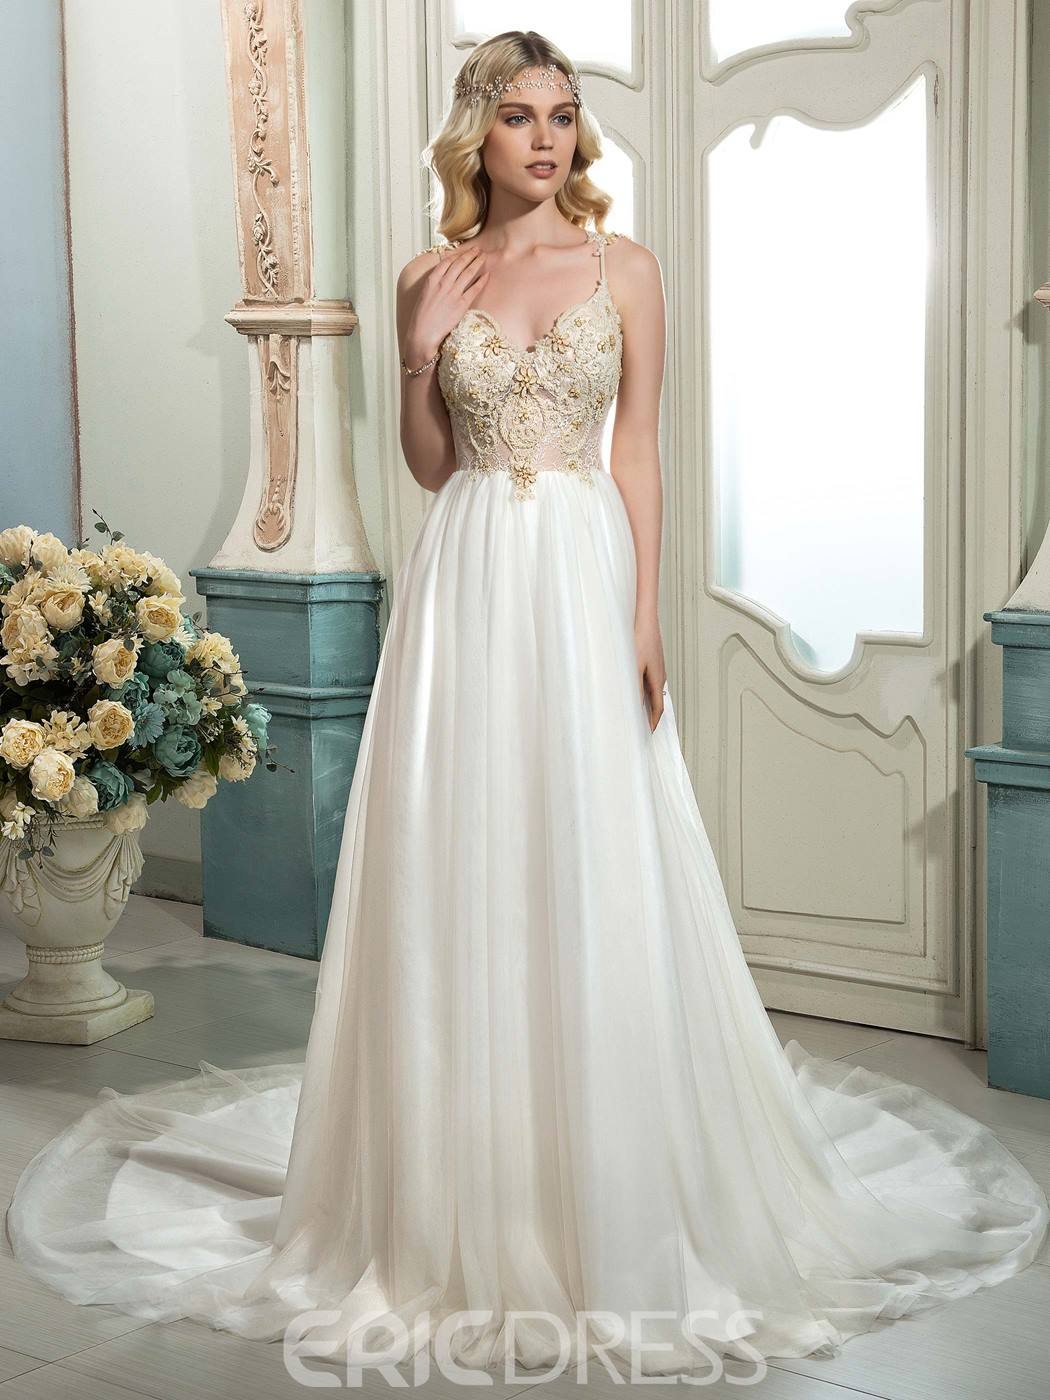 Ericdress beautiful spaghetti straps beaded a line wedding for Cheap and beautiful wedding dresses